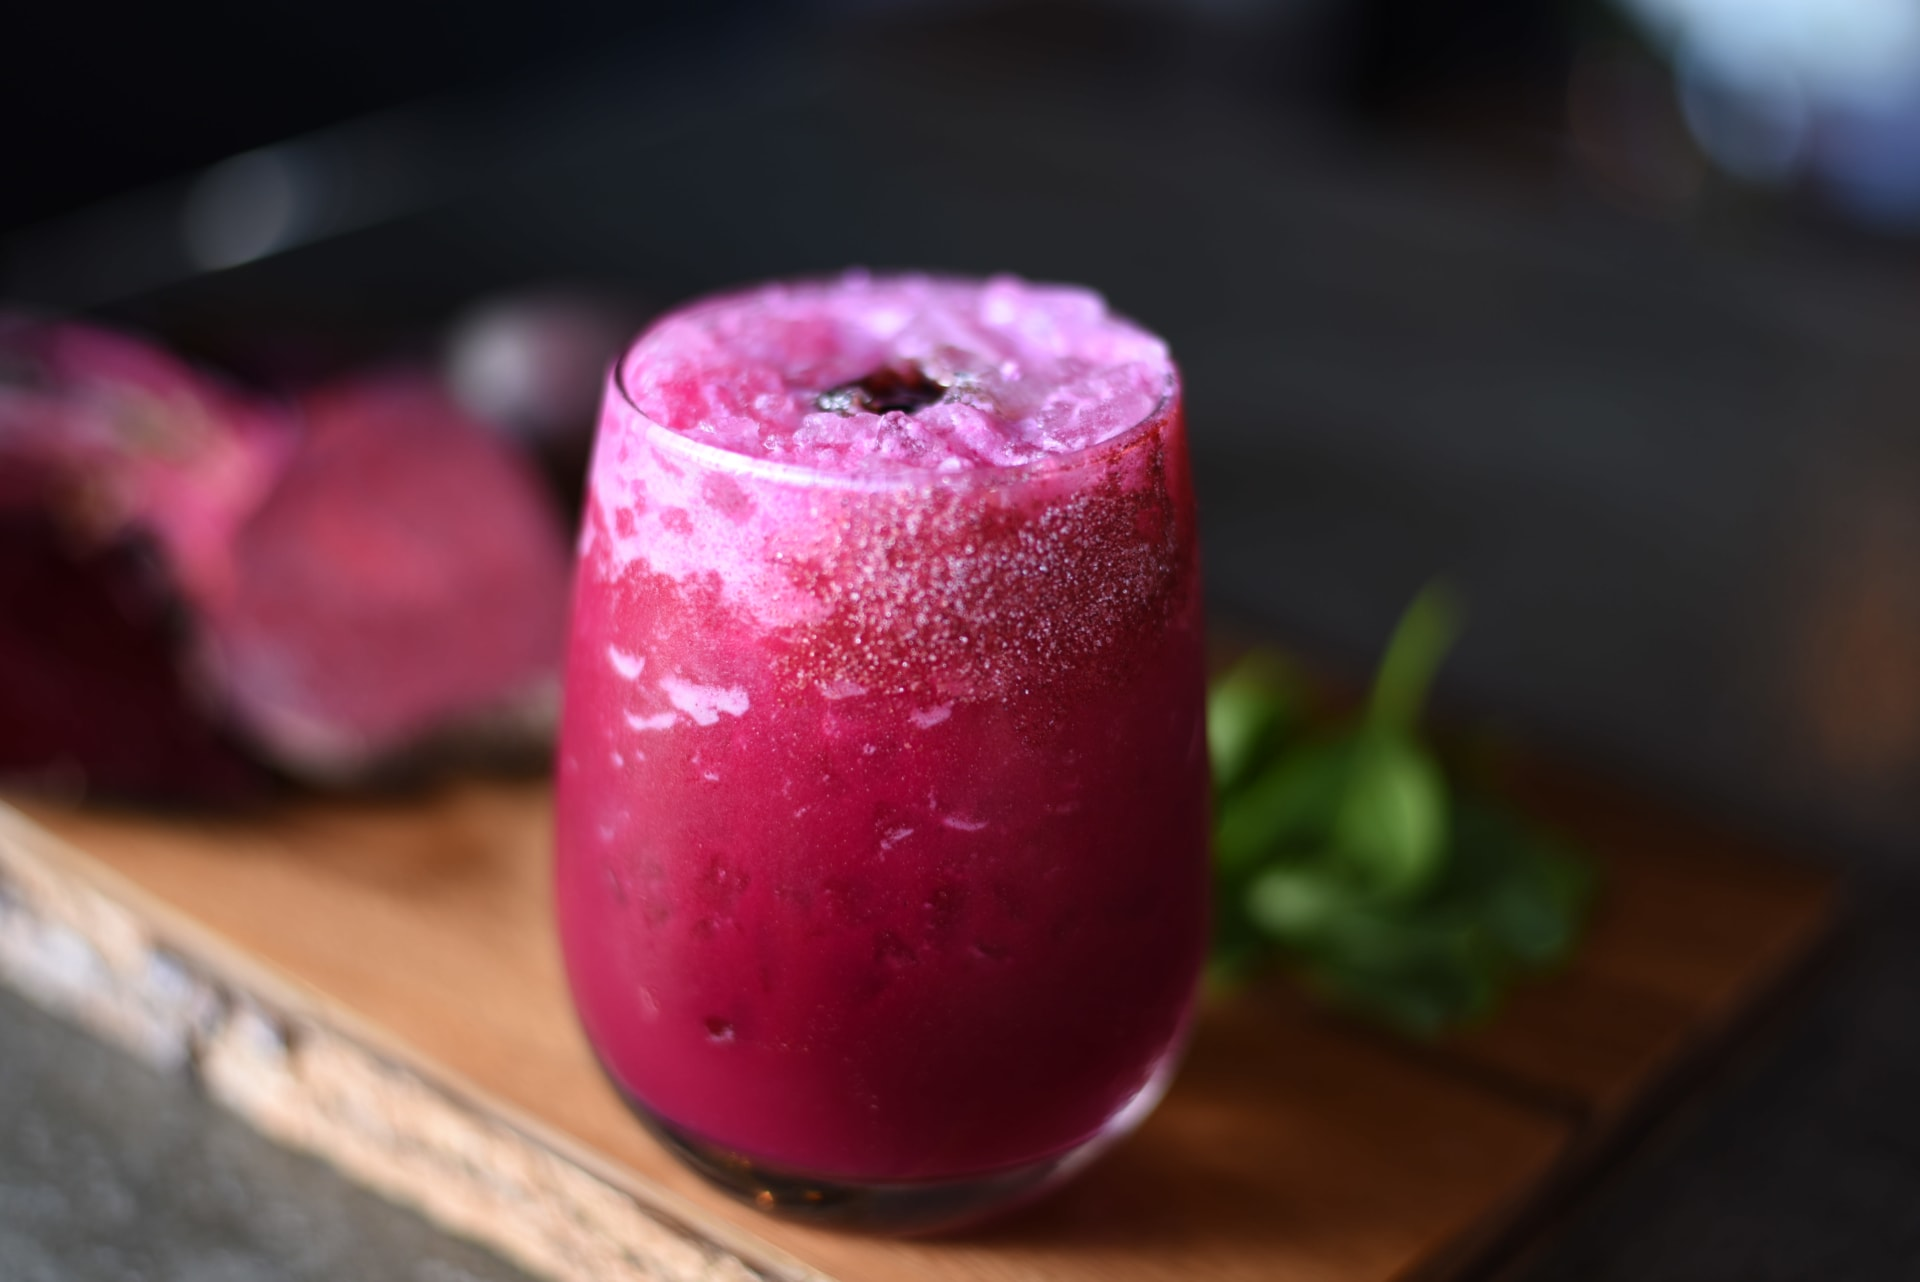 Beets by Gray